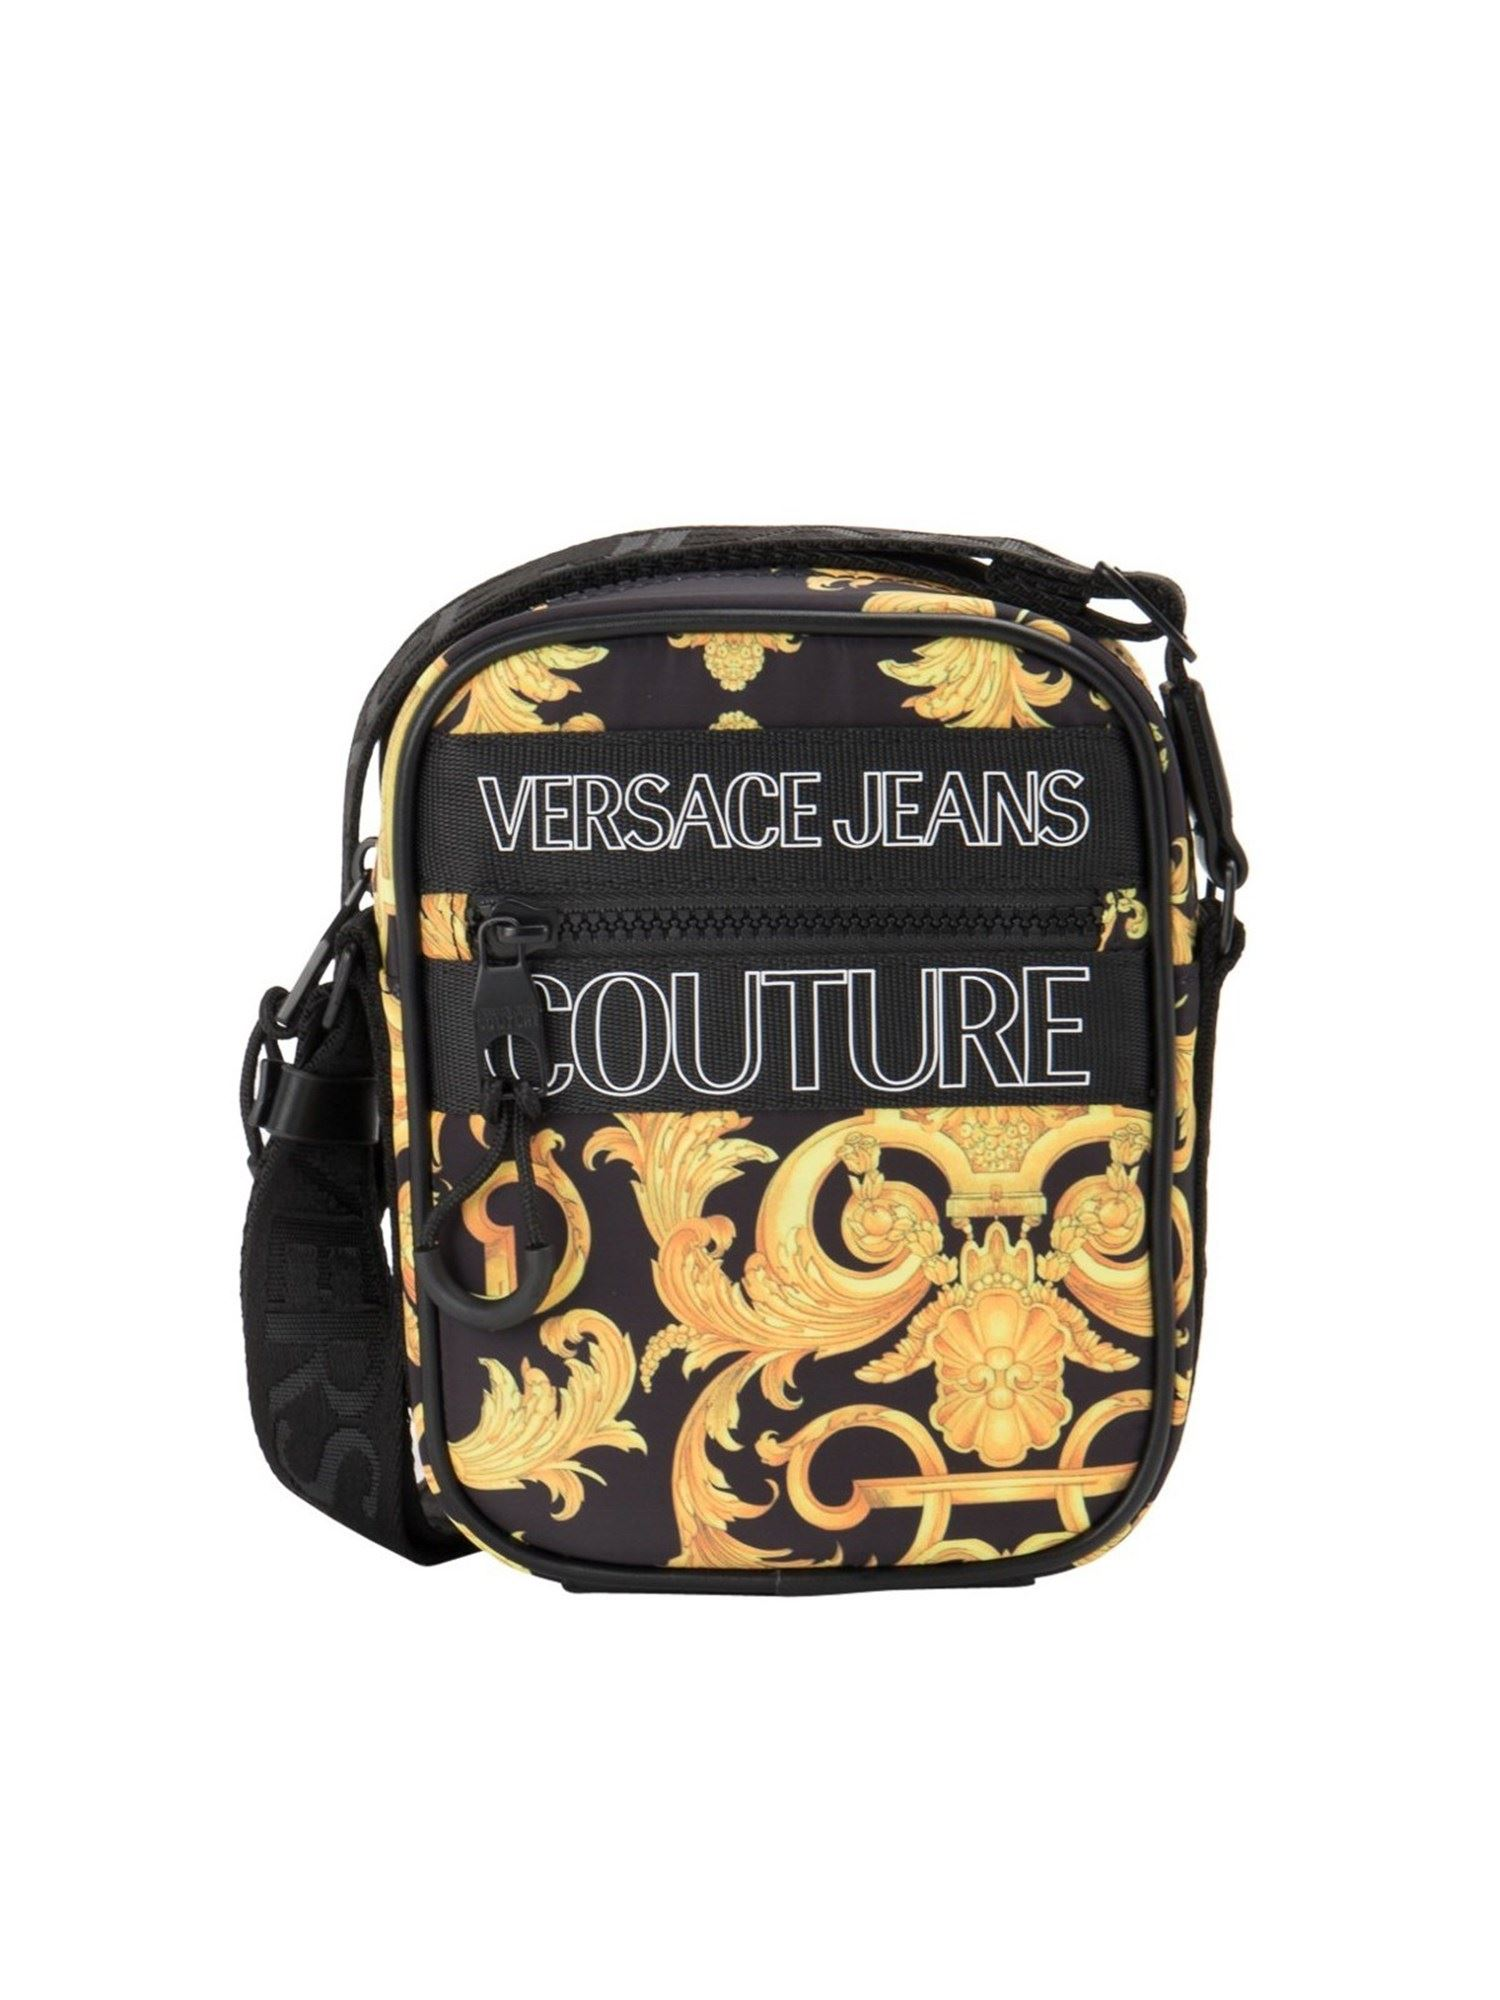 Versace Jeans Couture Crossbody bags BAROQUE PRINT FABRIC BAG IN BLACK